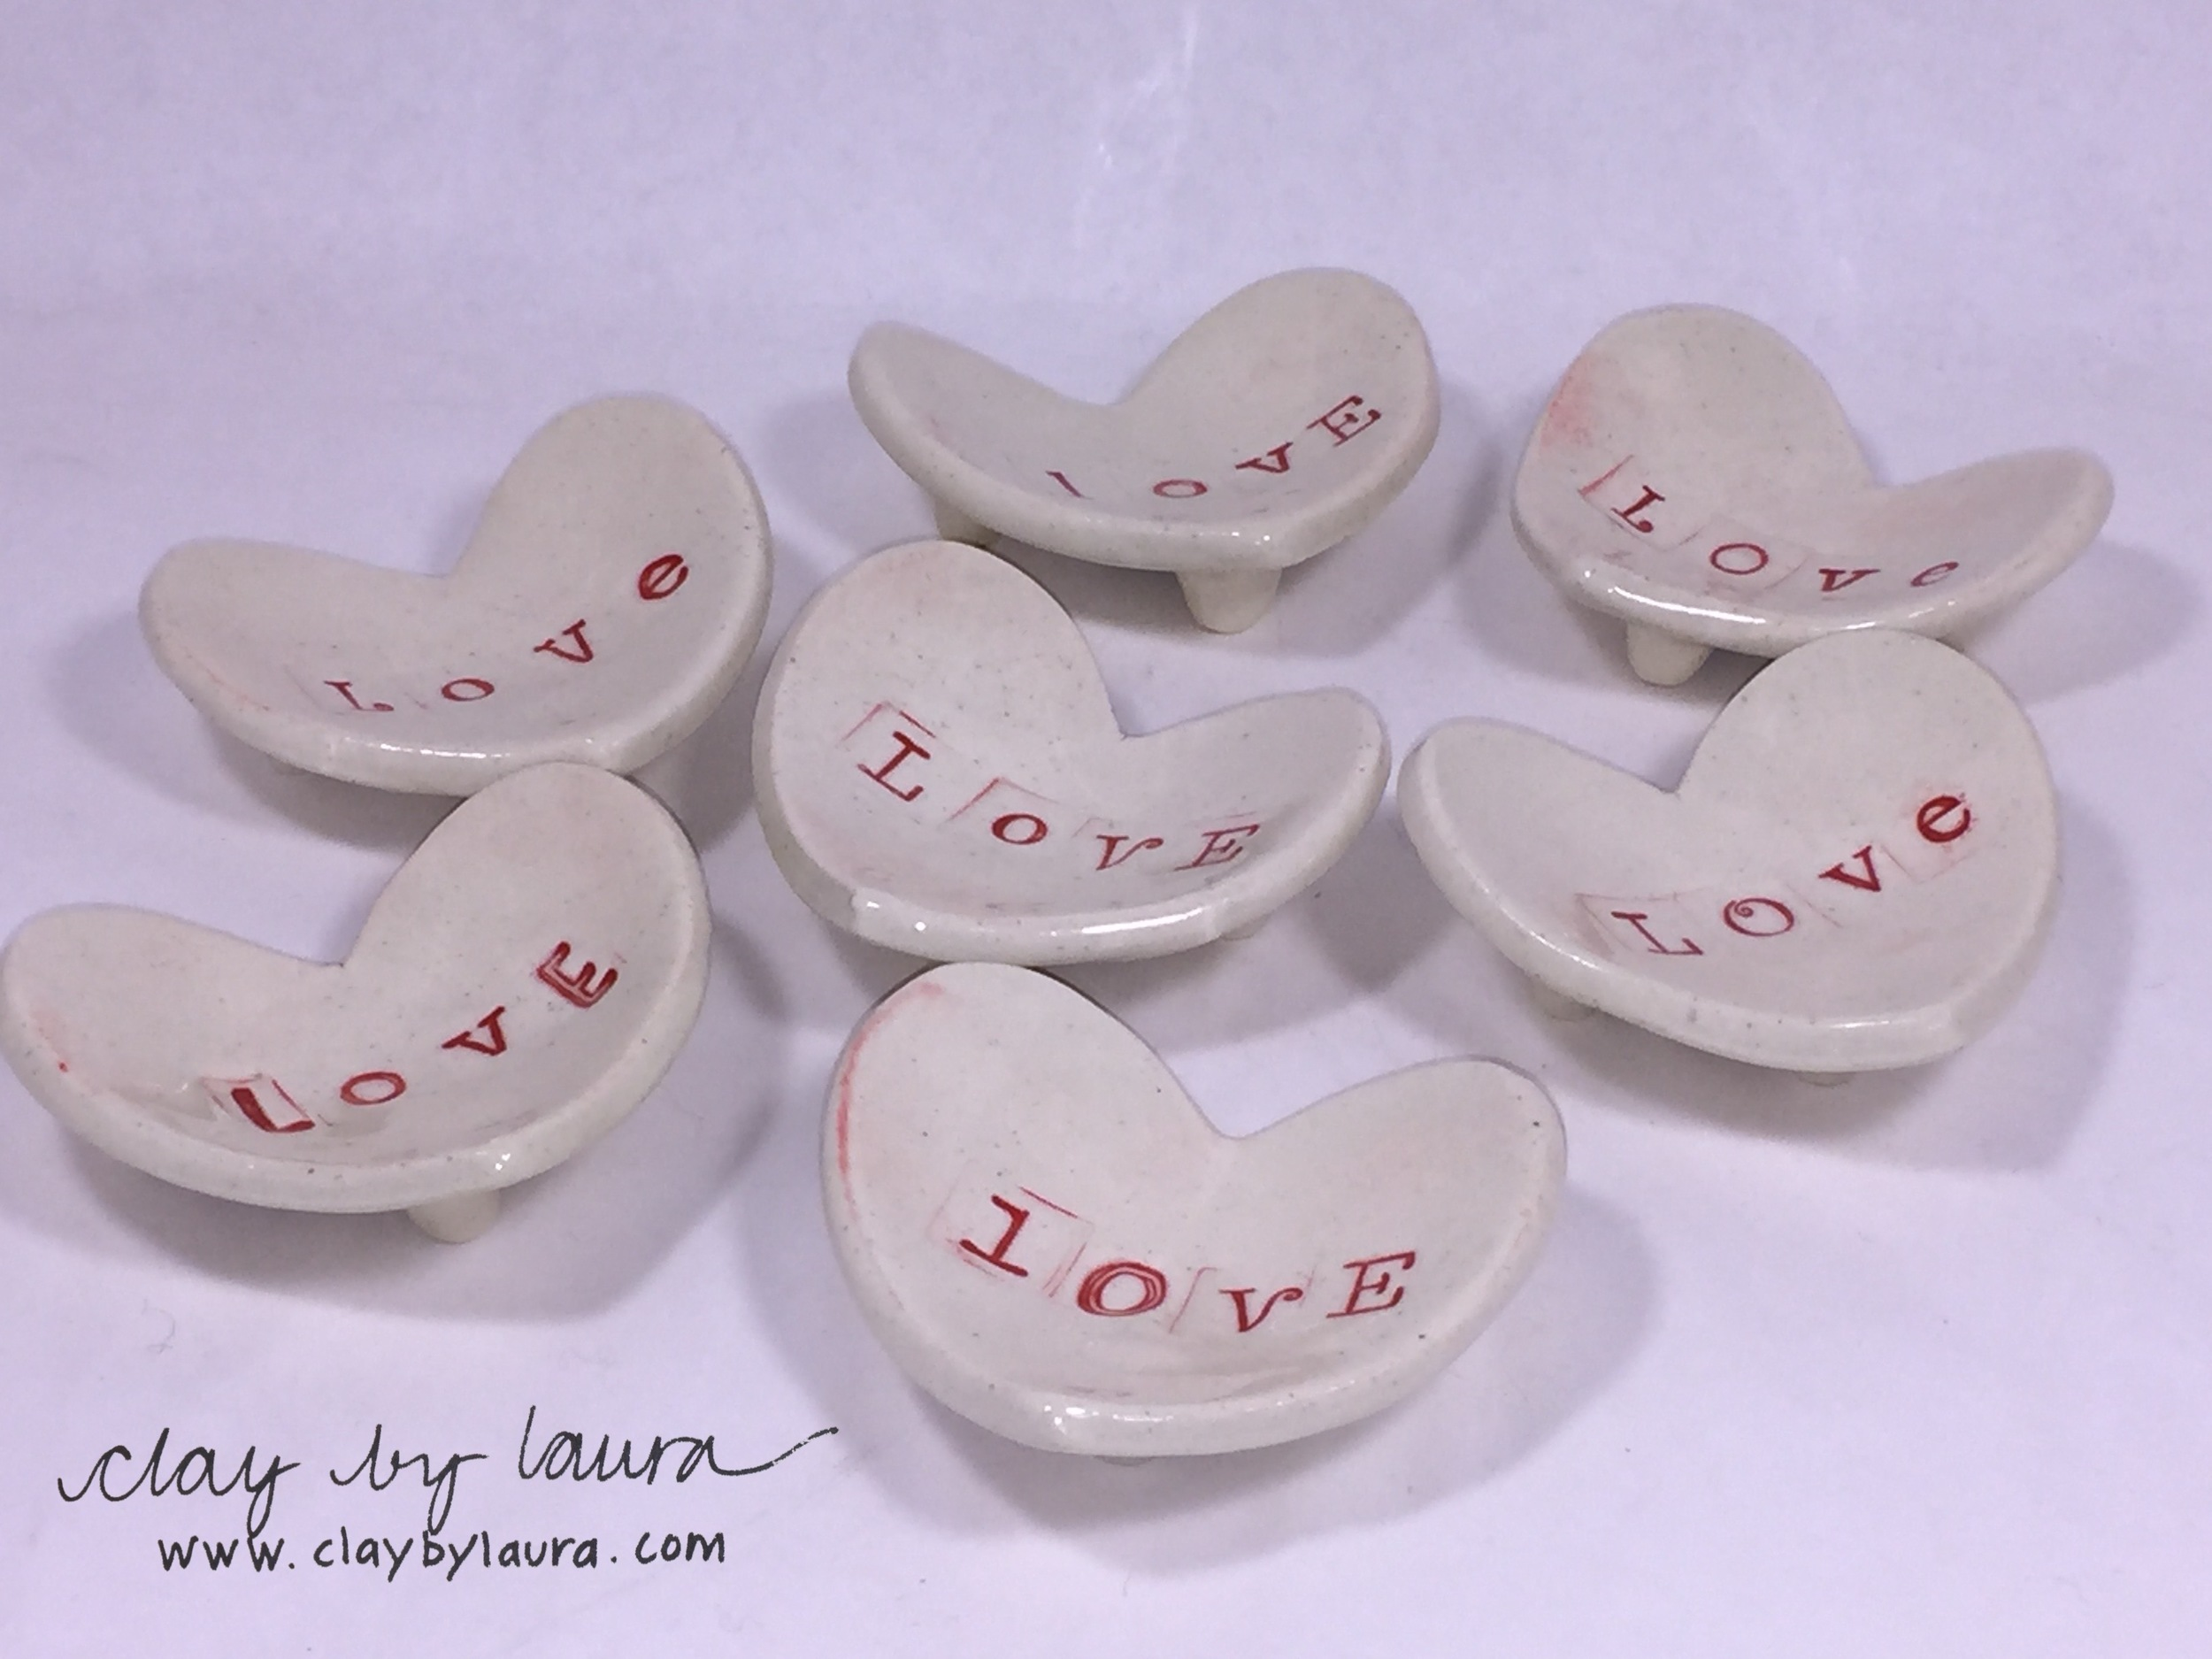 Small heart-shaped dishes can house your treasures or function in the kitchen!